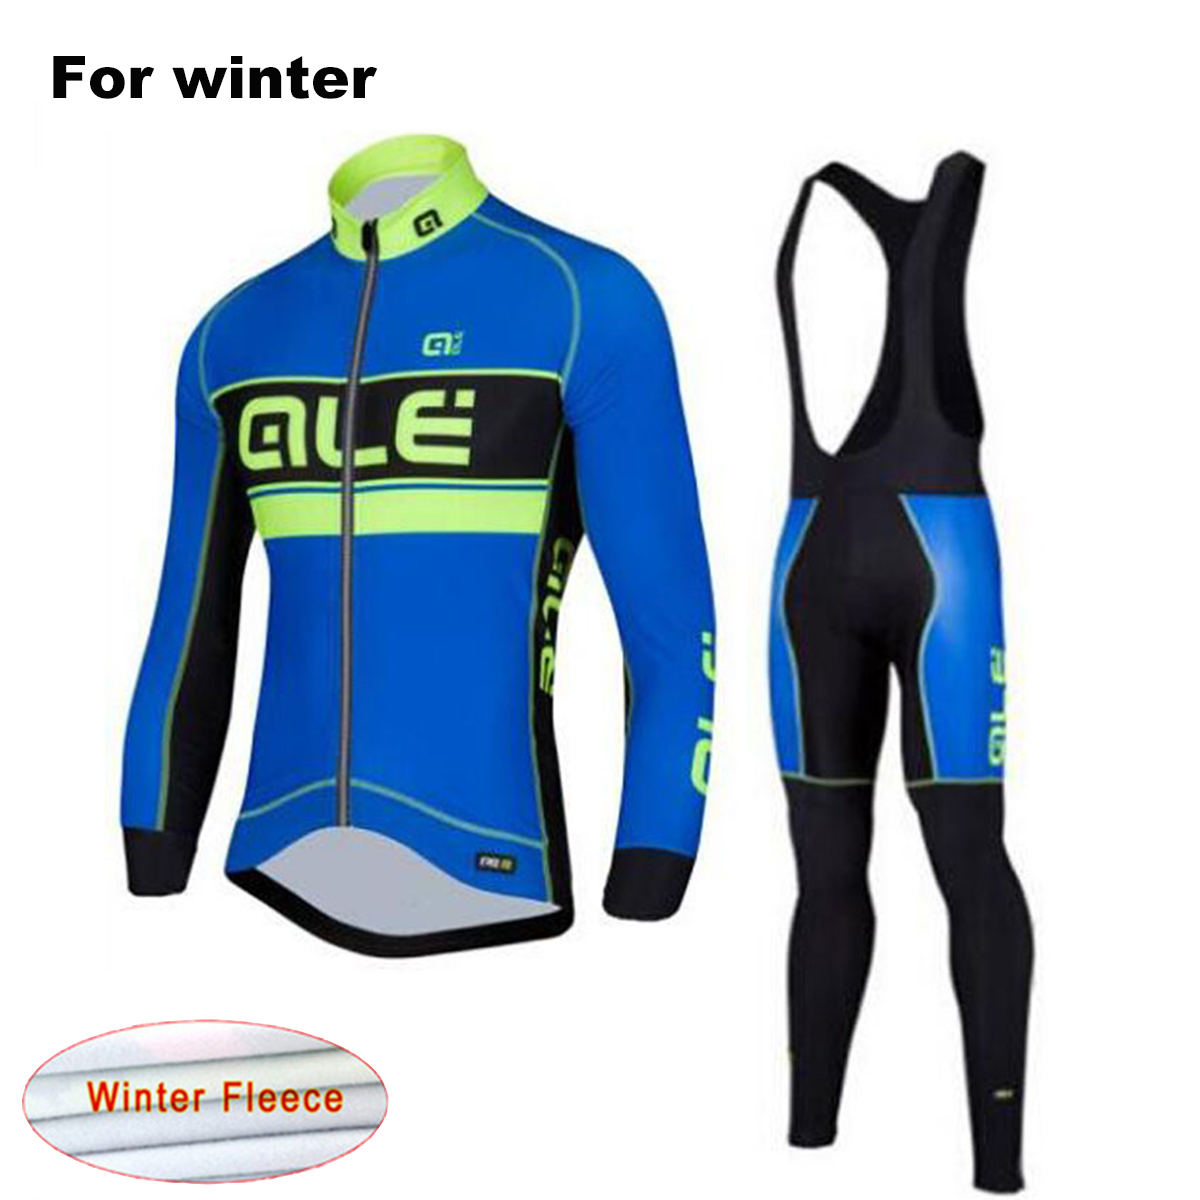 2017 Ale Team Winter Long Sleeves Bicycle Clothing Thermal Fleece Cycling Jersey Set Outdoor Sport Coat Bib Suit with 9D Gel Pad black thermal fleece cycling clothing winter fleece long adequate quality cycling jersey bicycle clothing cc5081